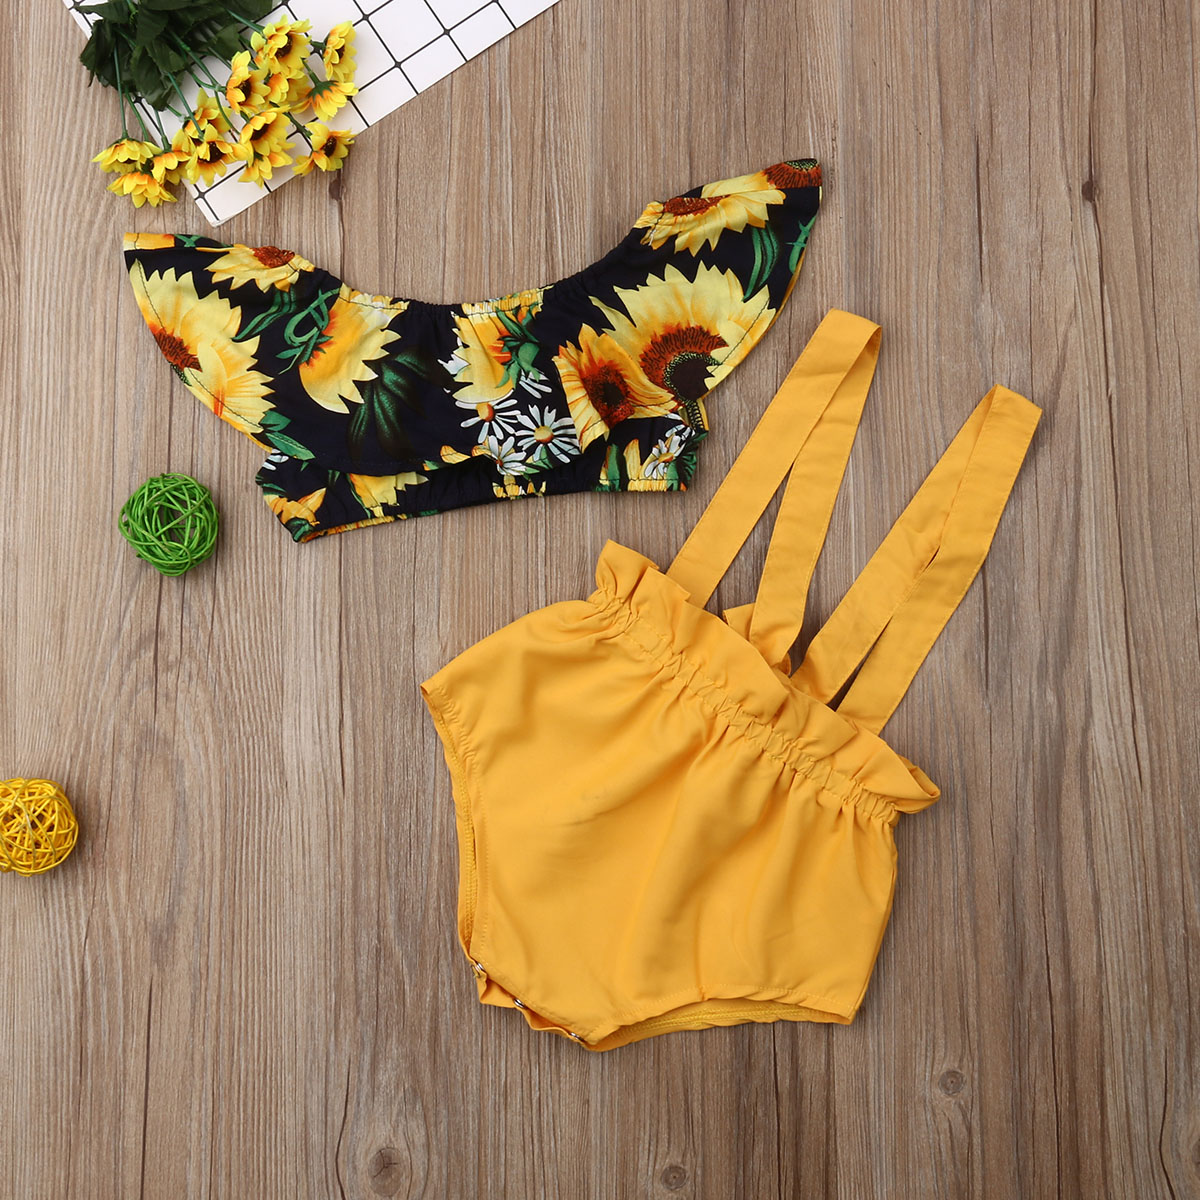 2PCS Newborn Baby Girl Sunflower Crop Tops Bib Pants Shorts Overalls Outfit Sets